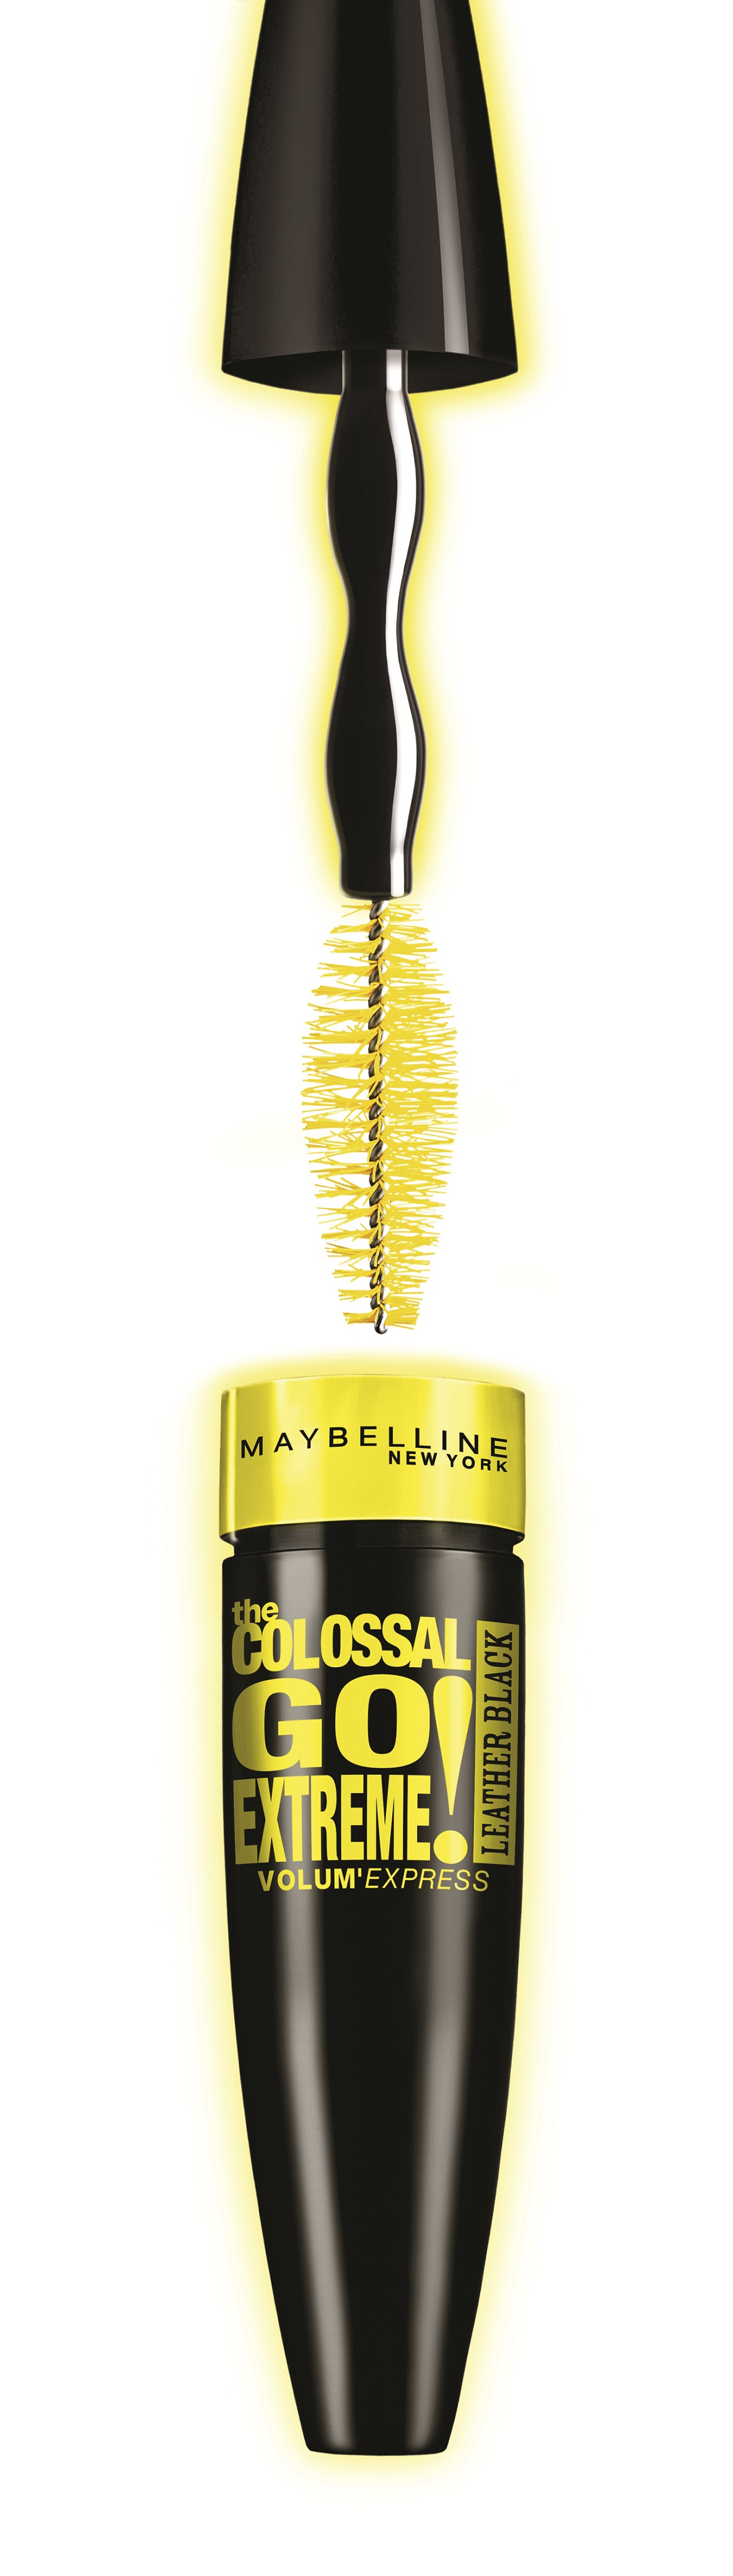 Maybelline New York Colossal Go Extreme Leather Black Mascara RRP$24.99